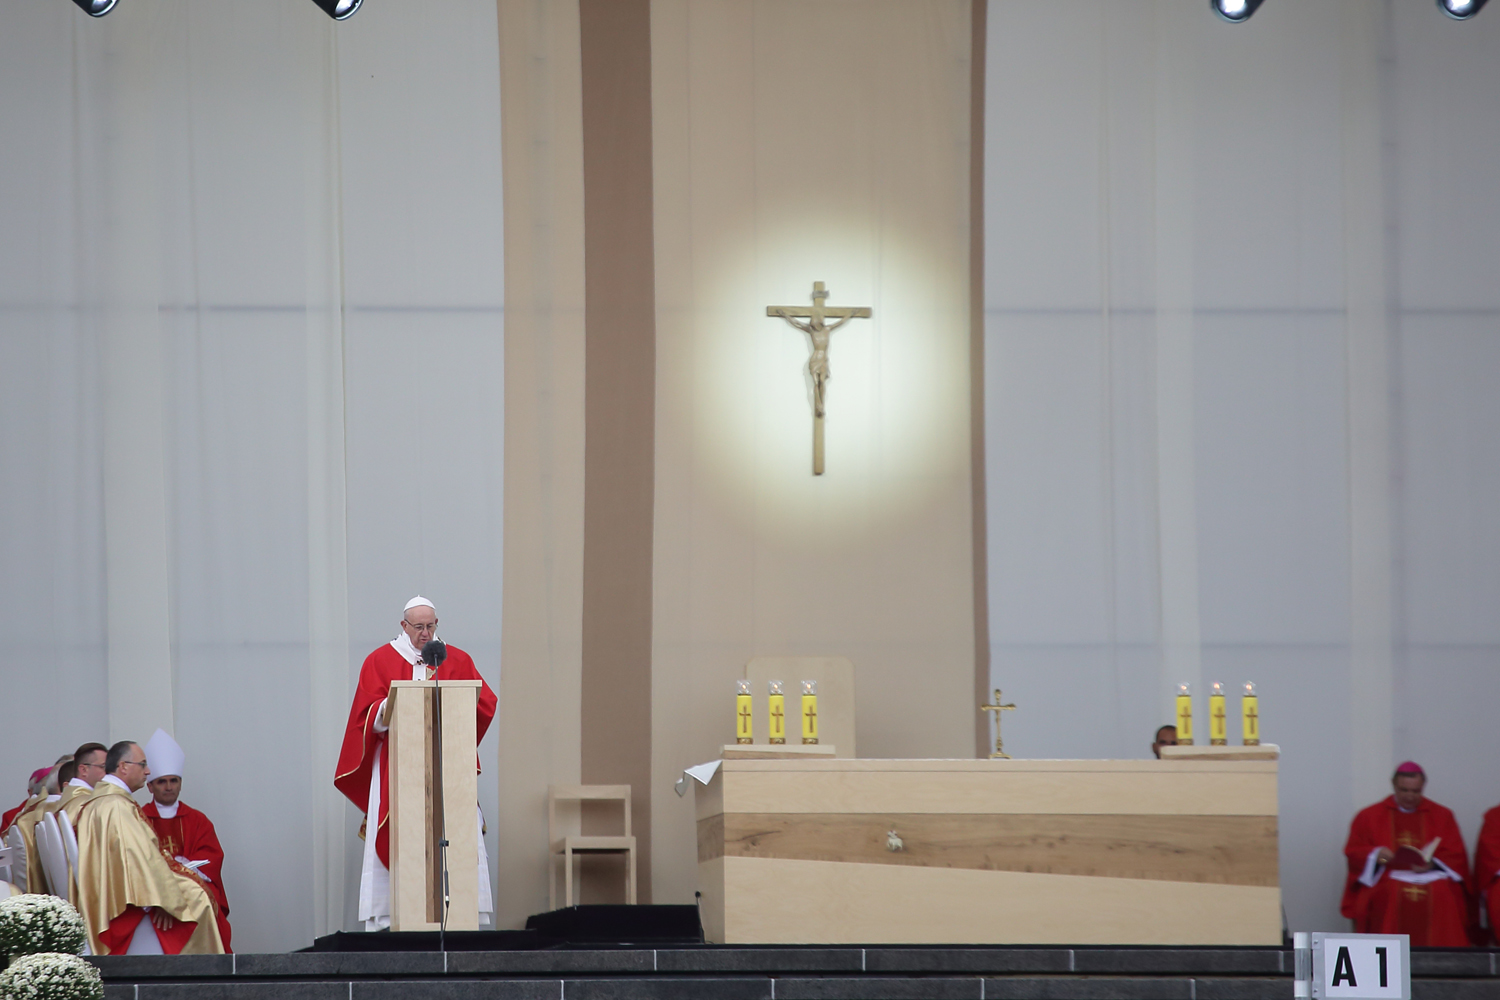 PM-2019-IFN-Furnier_fuer_Papstmesse2